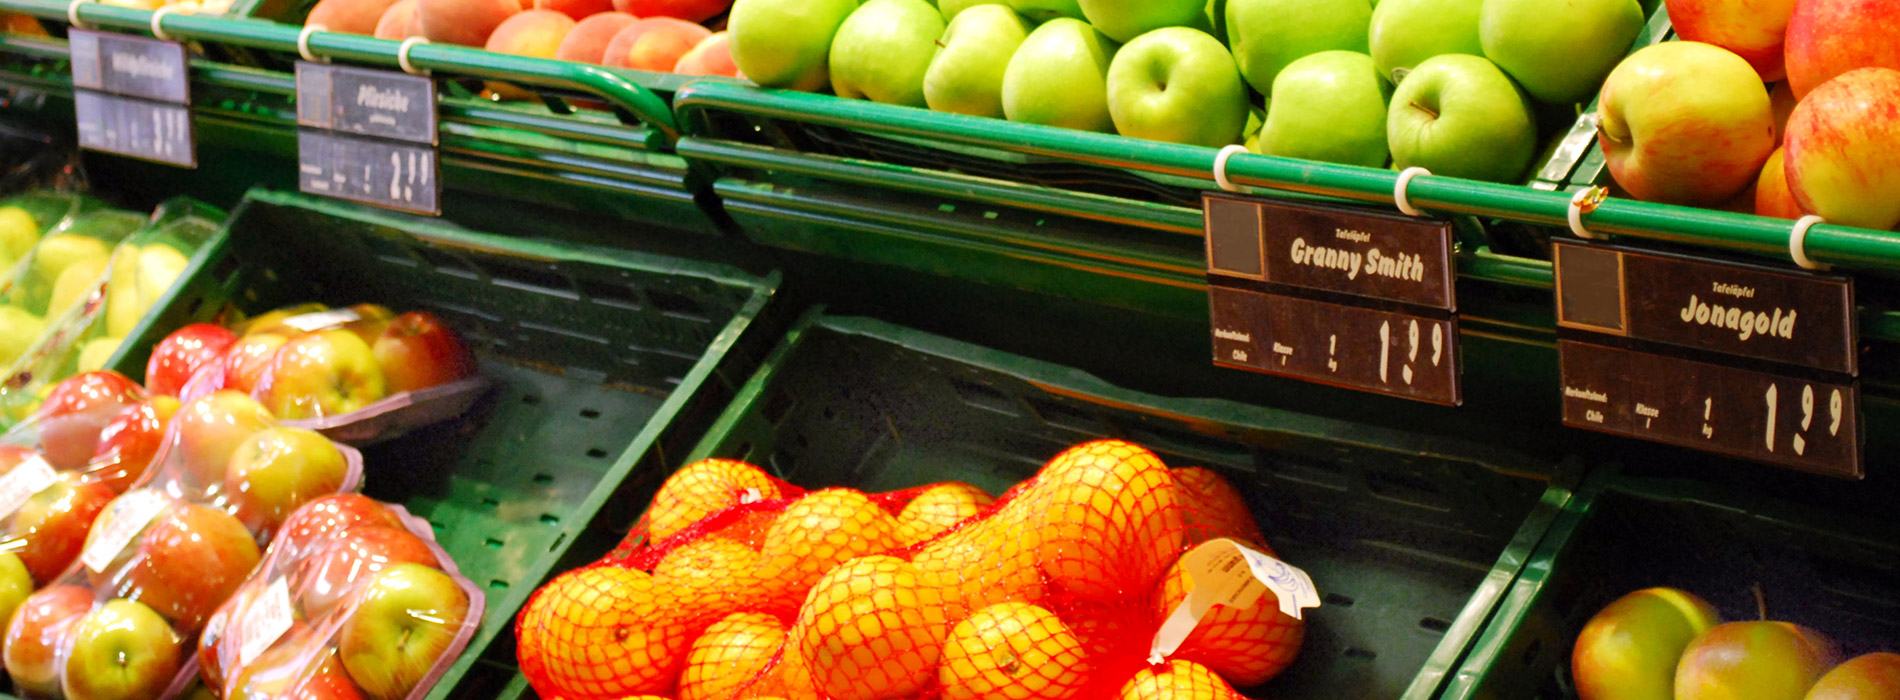 label-markets-food-beverage-labels-produce-fruits-grocery-store-apples-dls